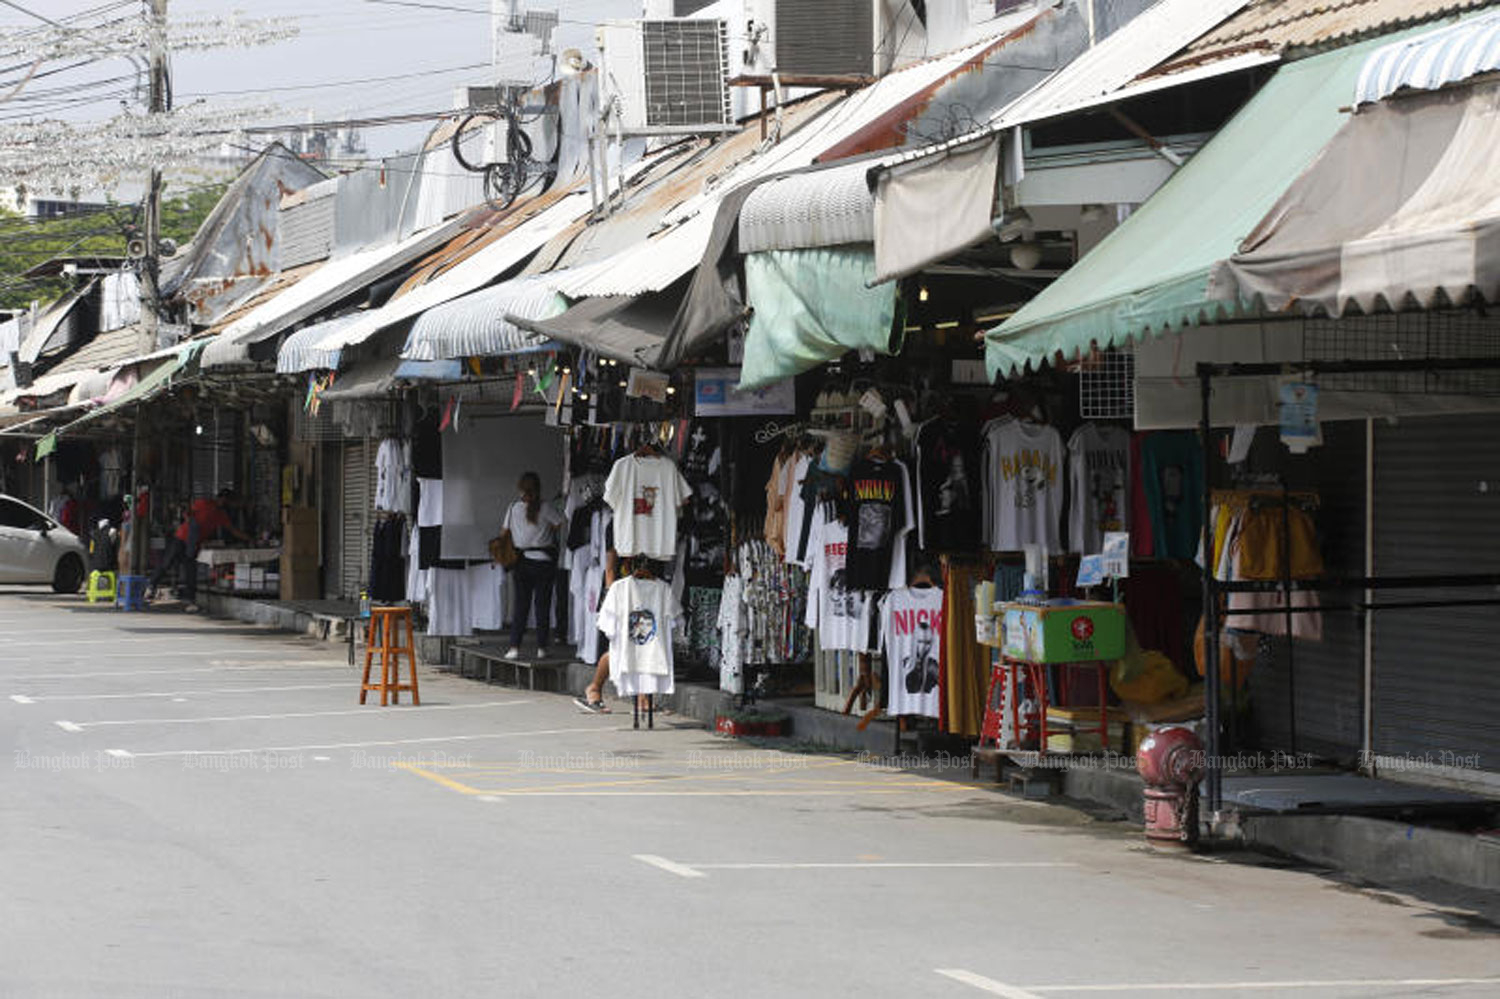 The Chatuchak weekend market is almost deserted on May 2 with most shops closed and shoppers absent because of coronavirus worries. (Bangkok Post file photo)